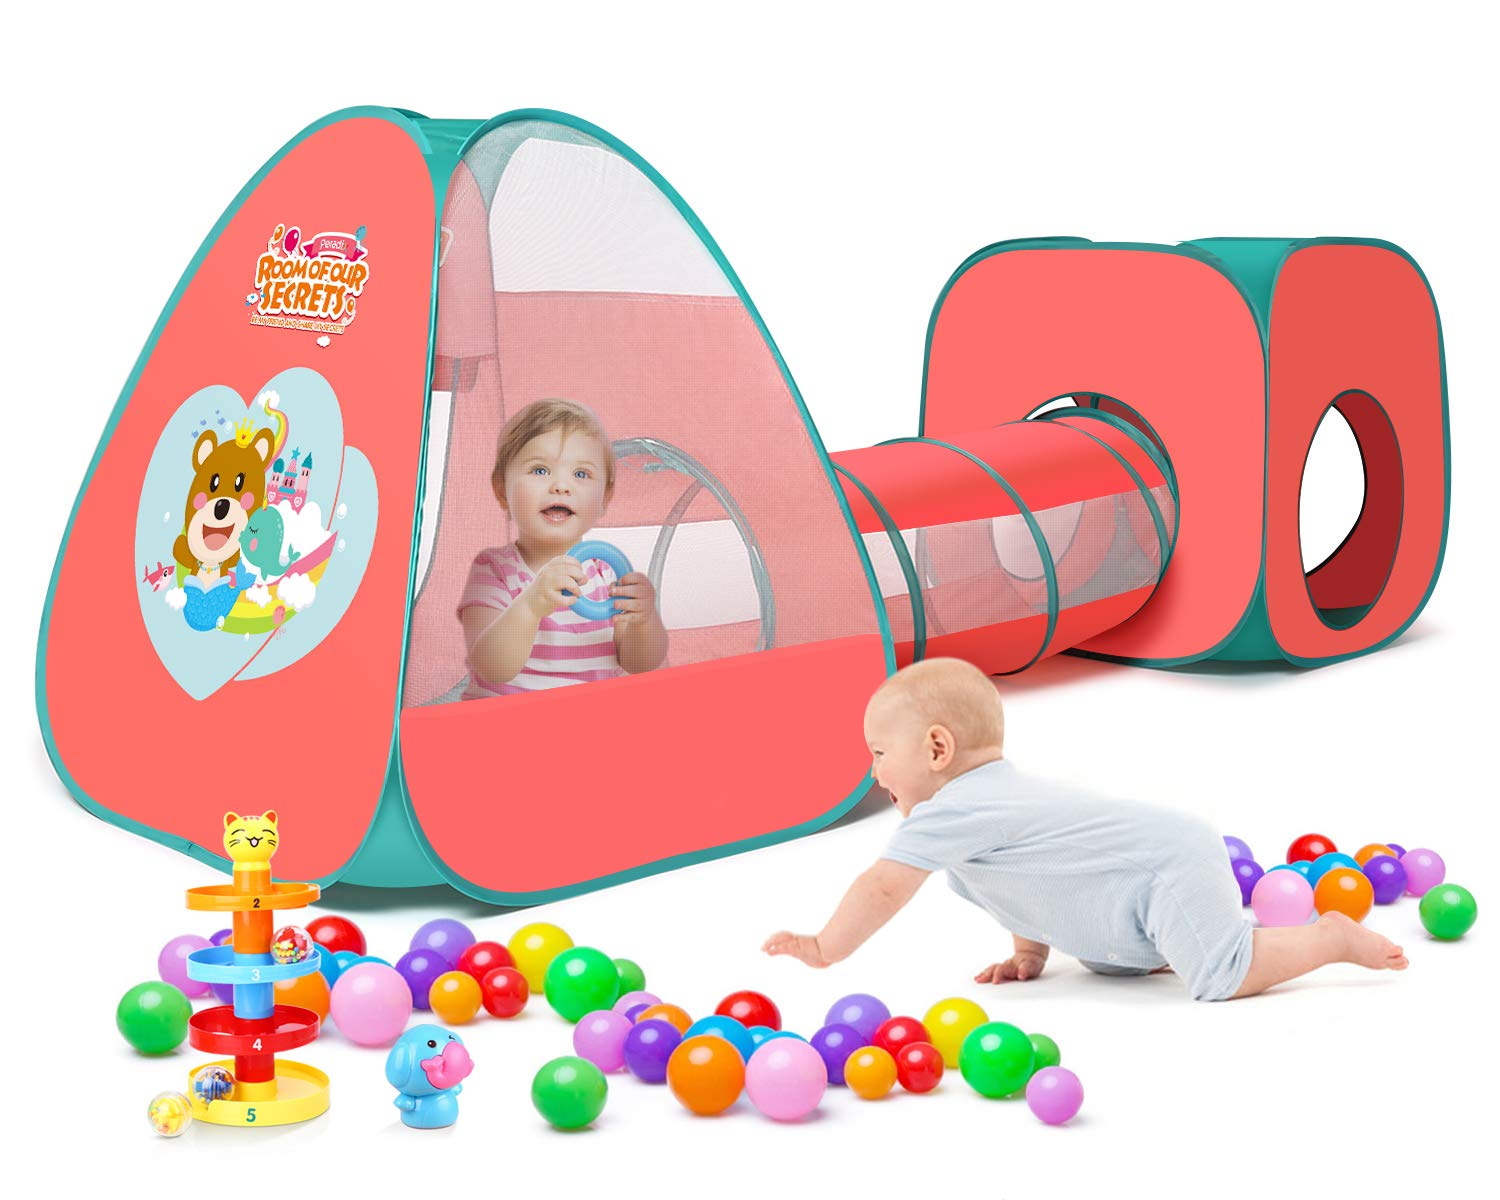 Peradix Pop Up Play Tent Tunnel for Kids Active - 6 Months to 6 Years Old Baby Ball Pit Tent with Tunnel for Kids, Boys, Girls, Babies and Toddlers, Indoor/Outdoor Playhouse(Red)